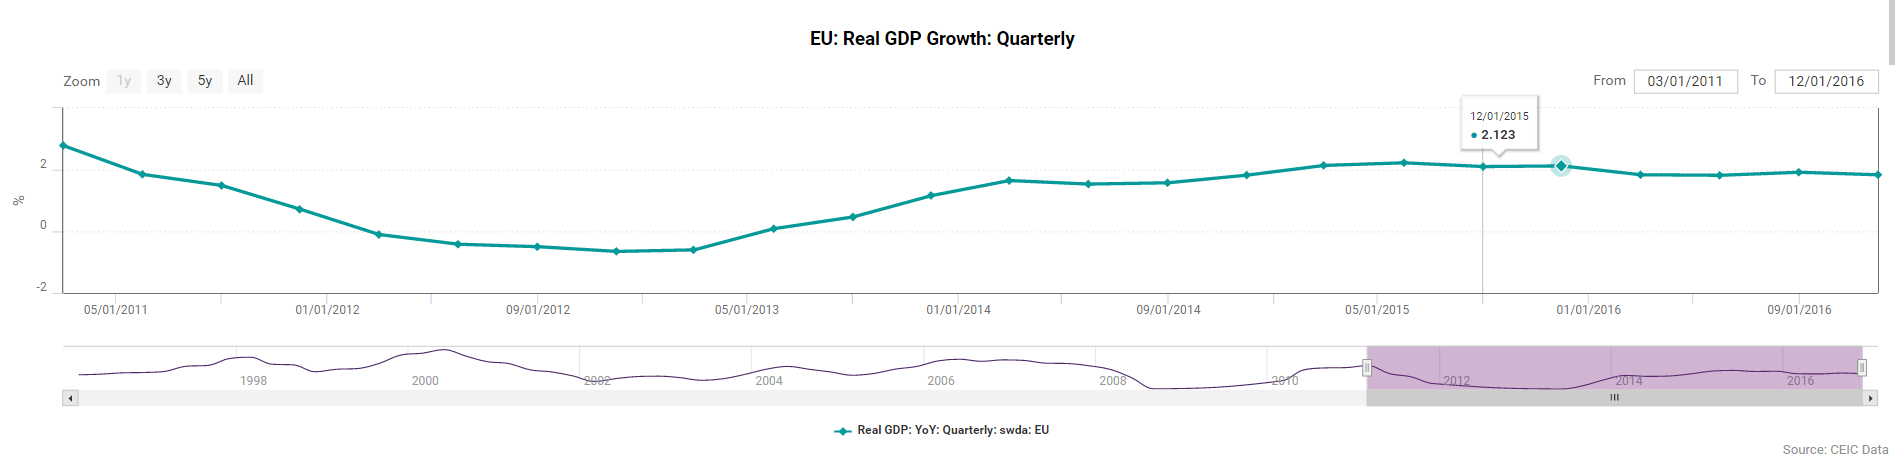 EU Real GDP Growth